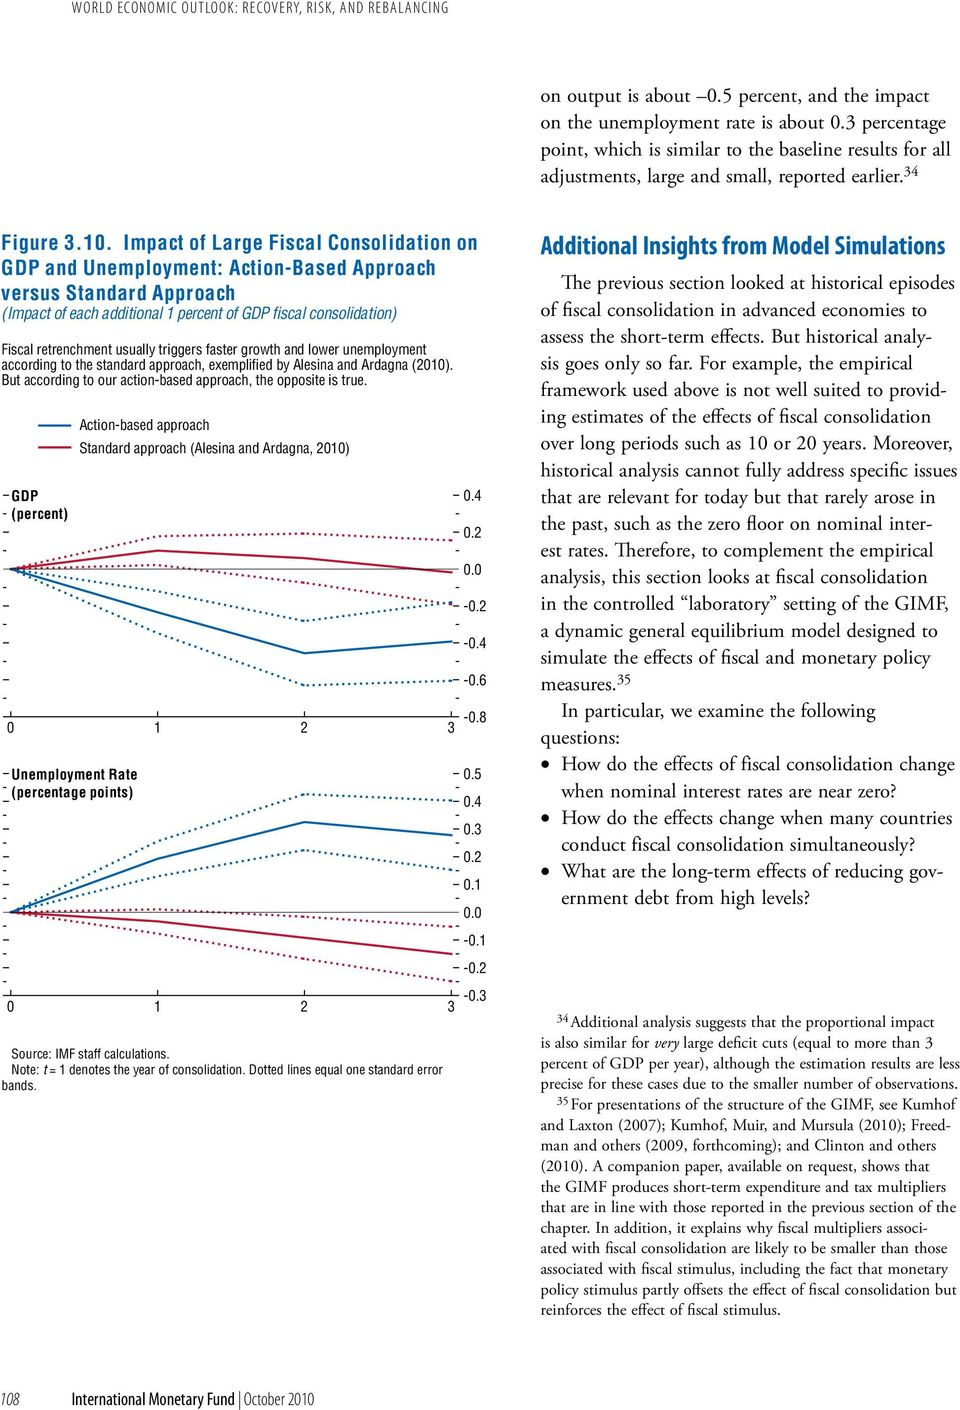 Impact of Large Fiscal Consolidation on GDP and Unemployment: Action-Based Approach versus Standard Approach (Impact of each additional 1 percent of GDP fiscal consolidation) Fiscal retrenchment